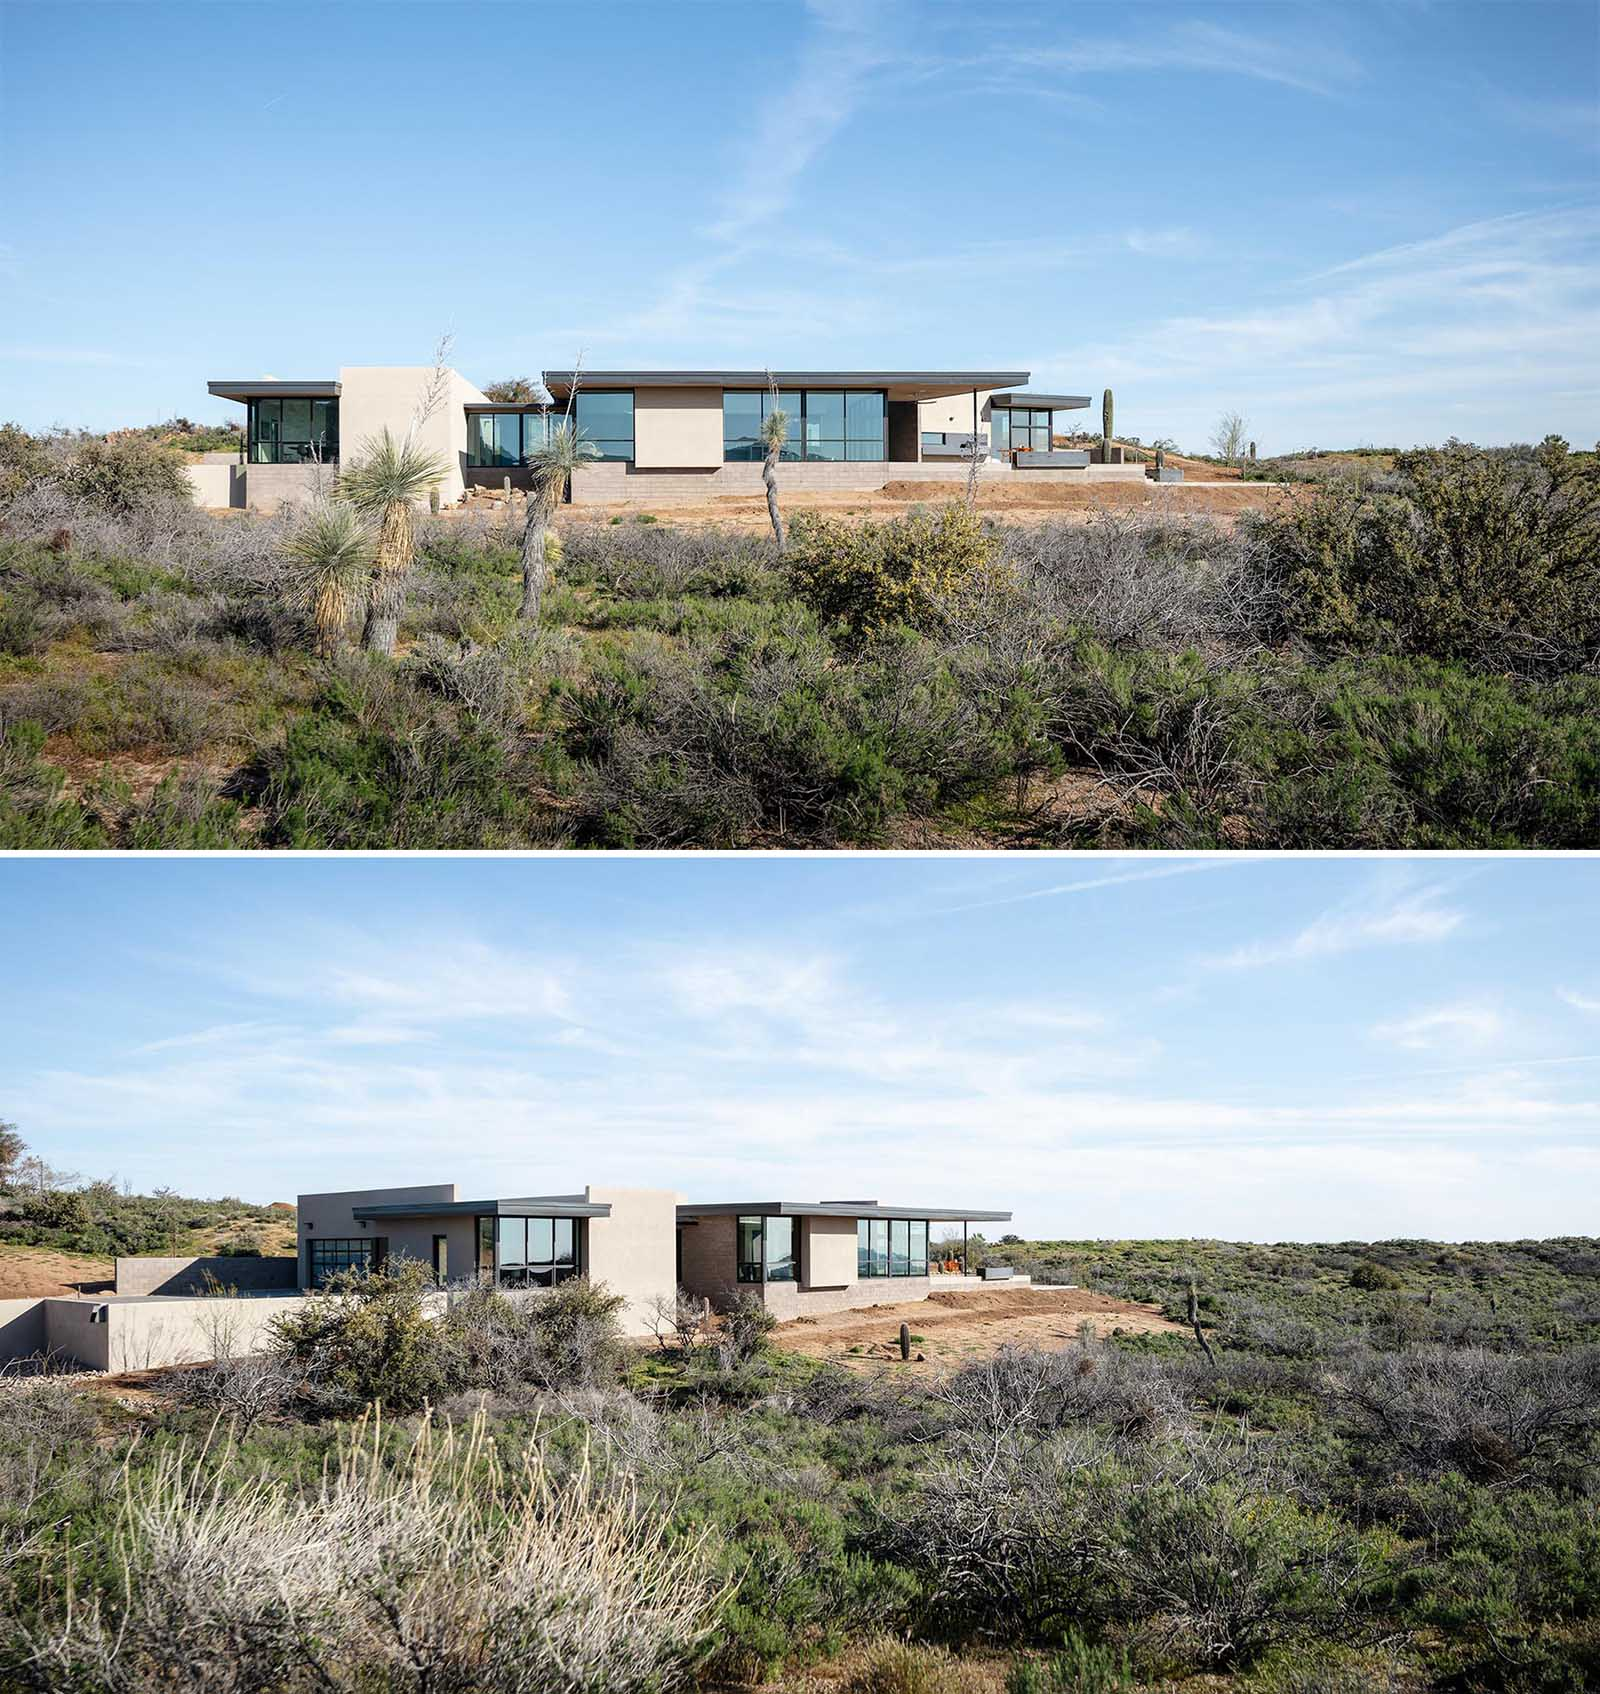 Surrounded by a desert landscape, this modern home has a large roof overhang that helps protect the glass areas from the harsh Arizona sun.